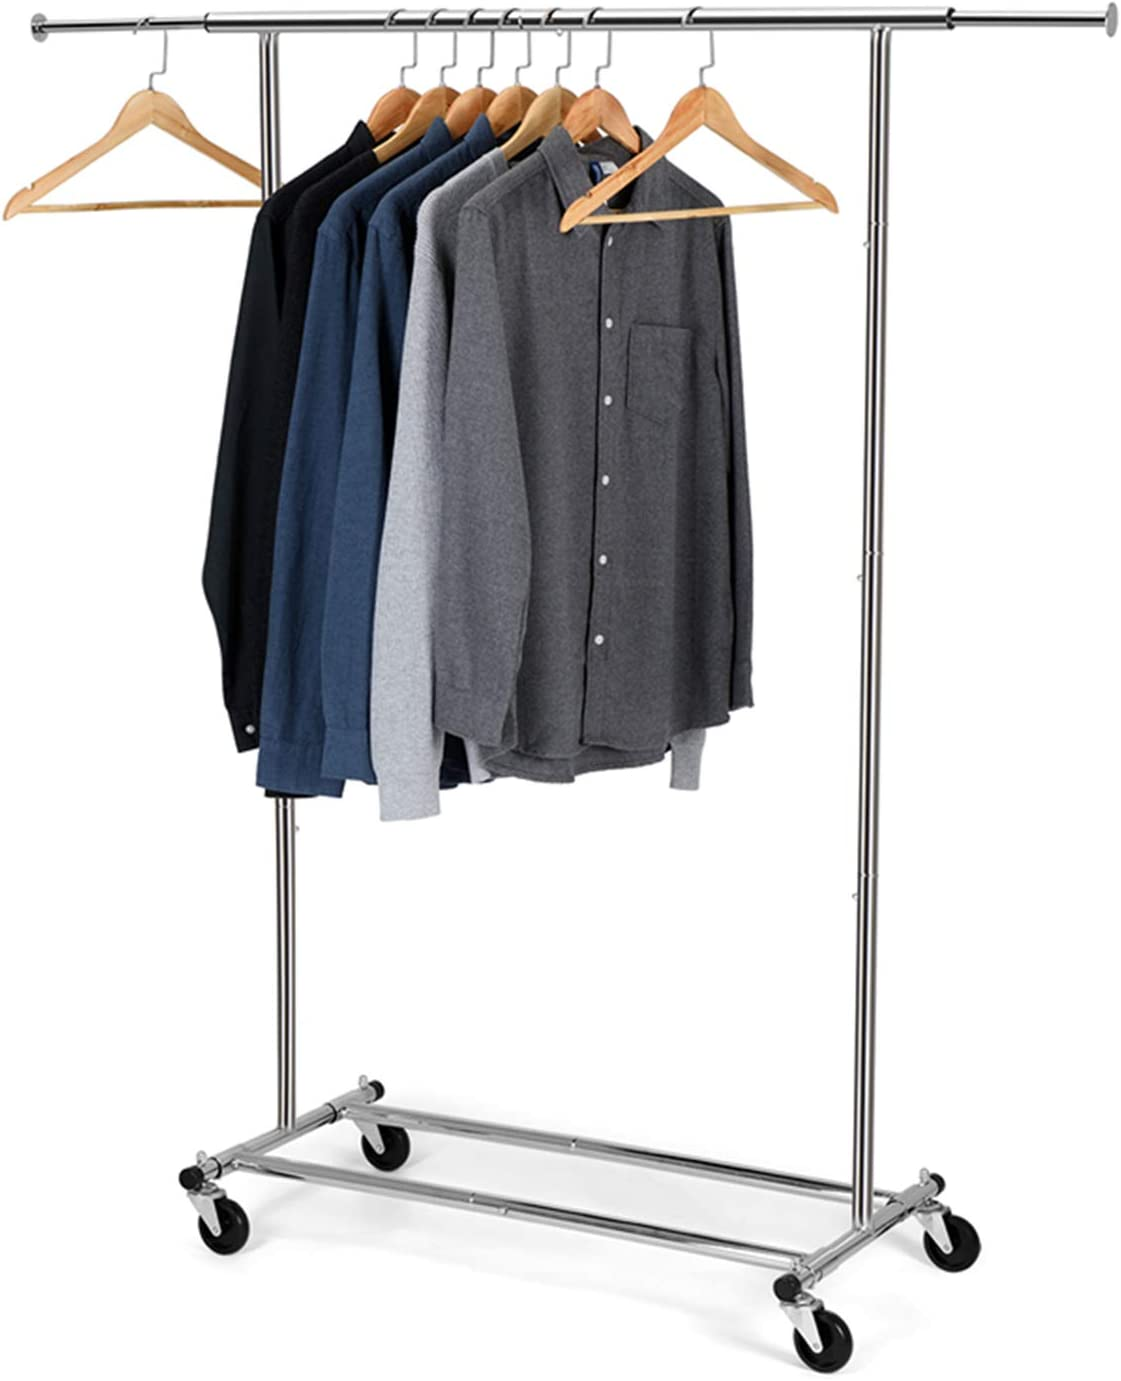 Bextsware Clothes Garment Rack, Commercial Grade Clothes Rolling Heavy Duty Storage Organizer on Wheels